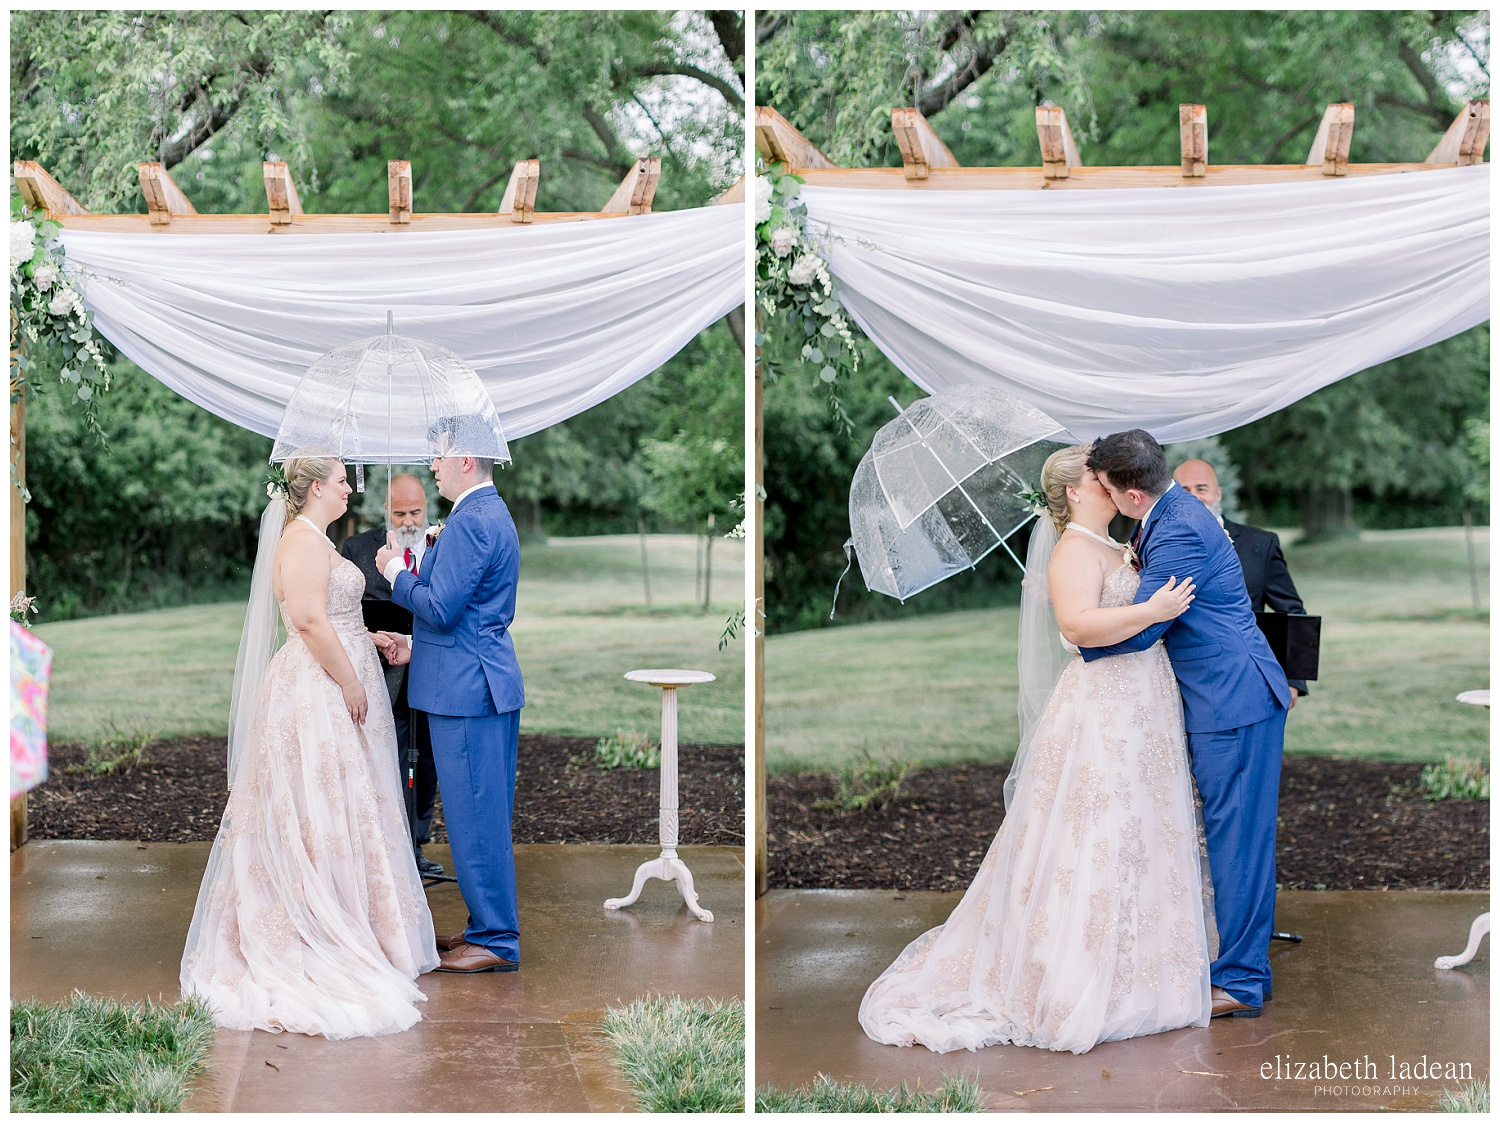 Rainy-KC-Wedding-Legacy-at-Green-Hills-H+J-0630-elizabeth-ladean-photography-photo-_8915.jpg